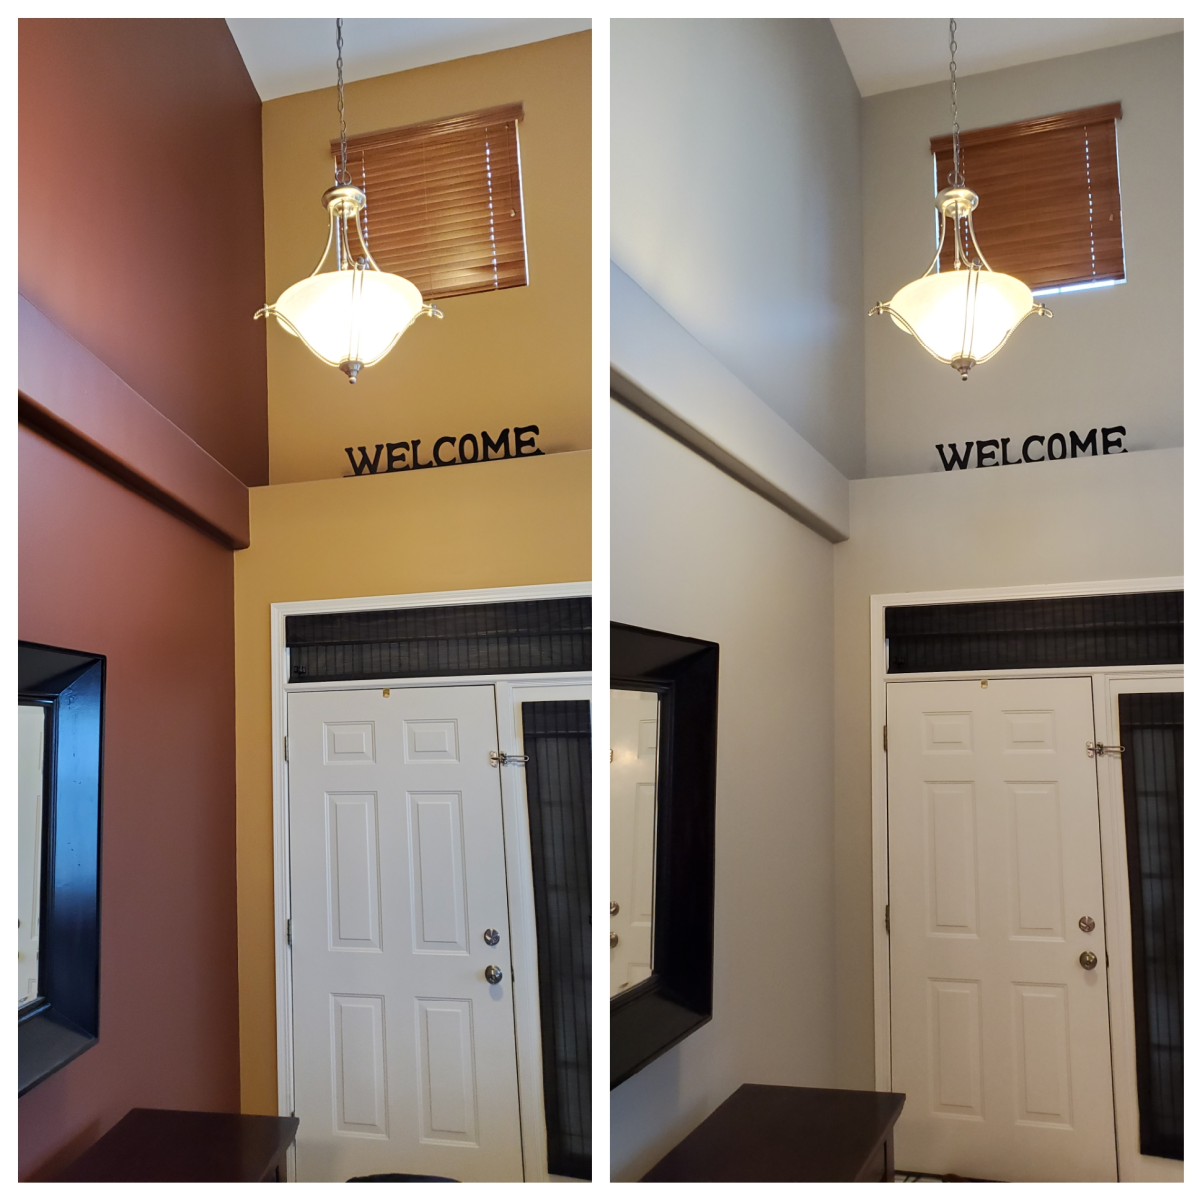 Foyer walls I painted with the color Repose Gray from Sherwin Williams.